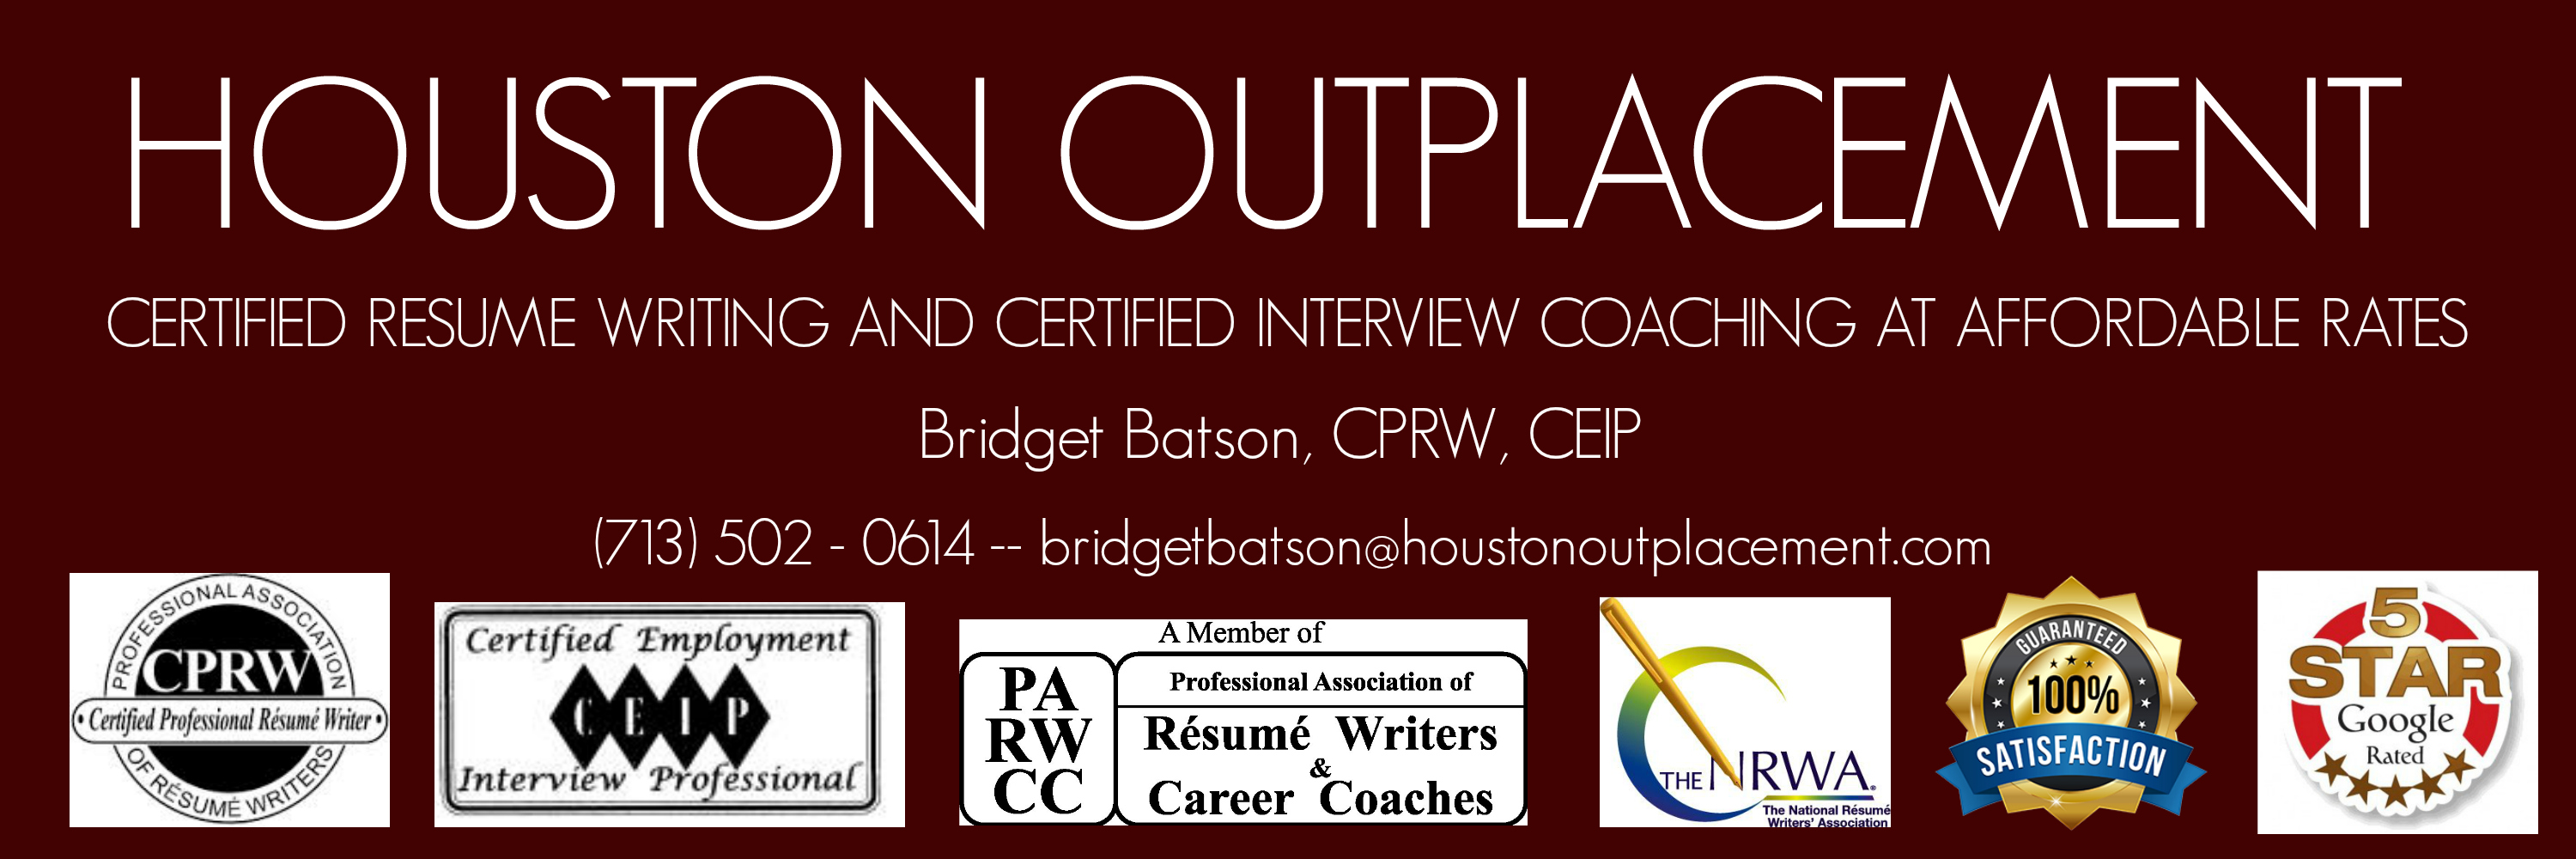 Houston Outplacement - CERTIFIED Resume Writing and Interview ...